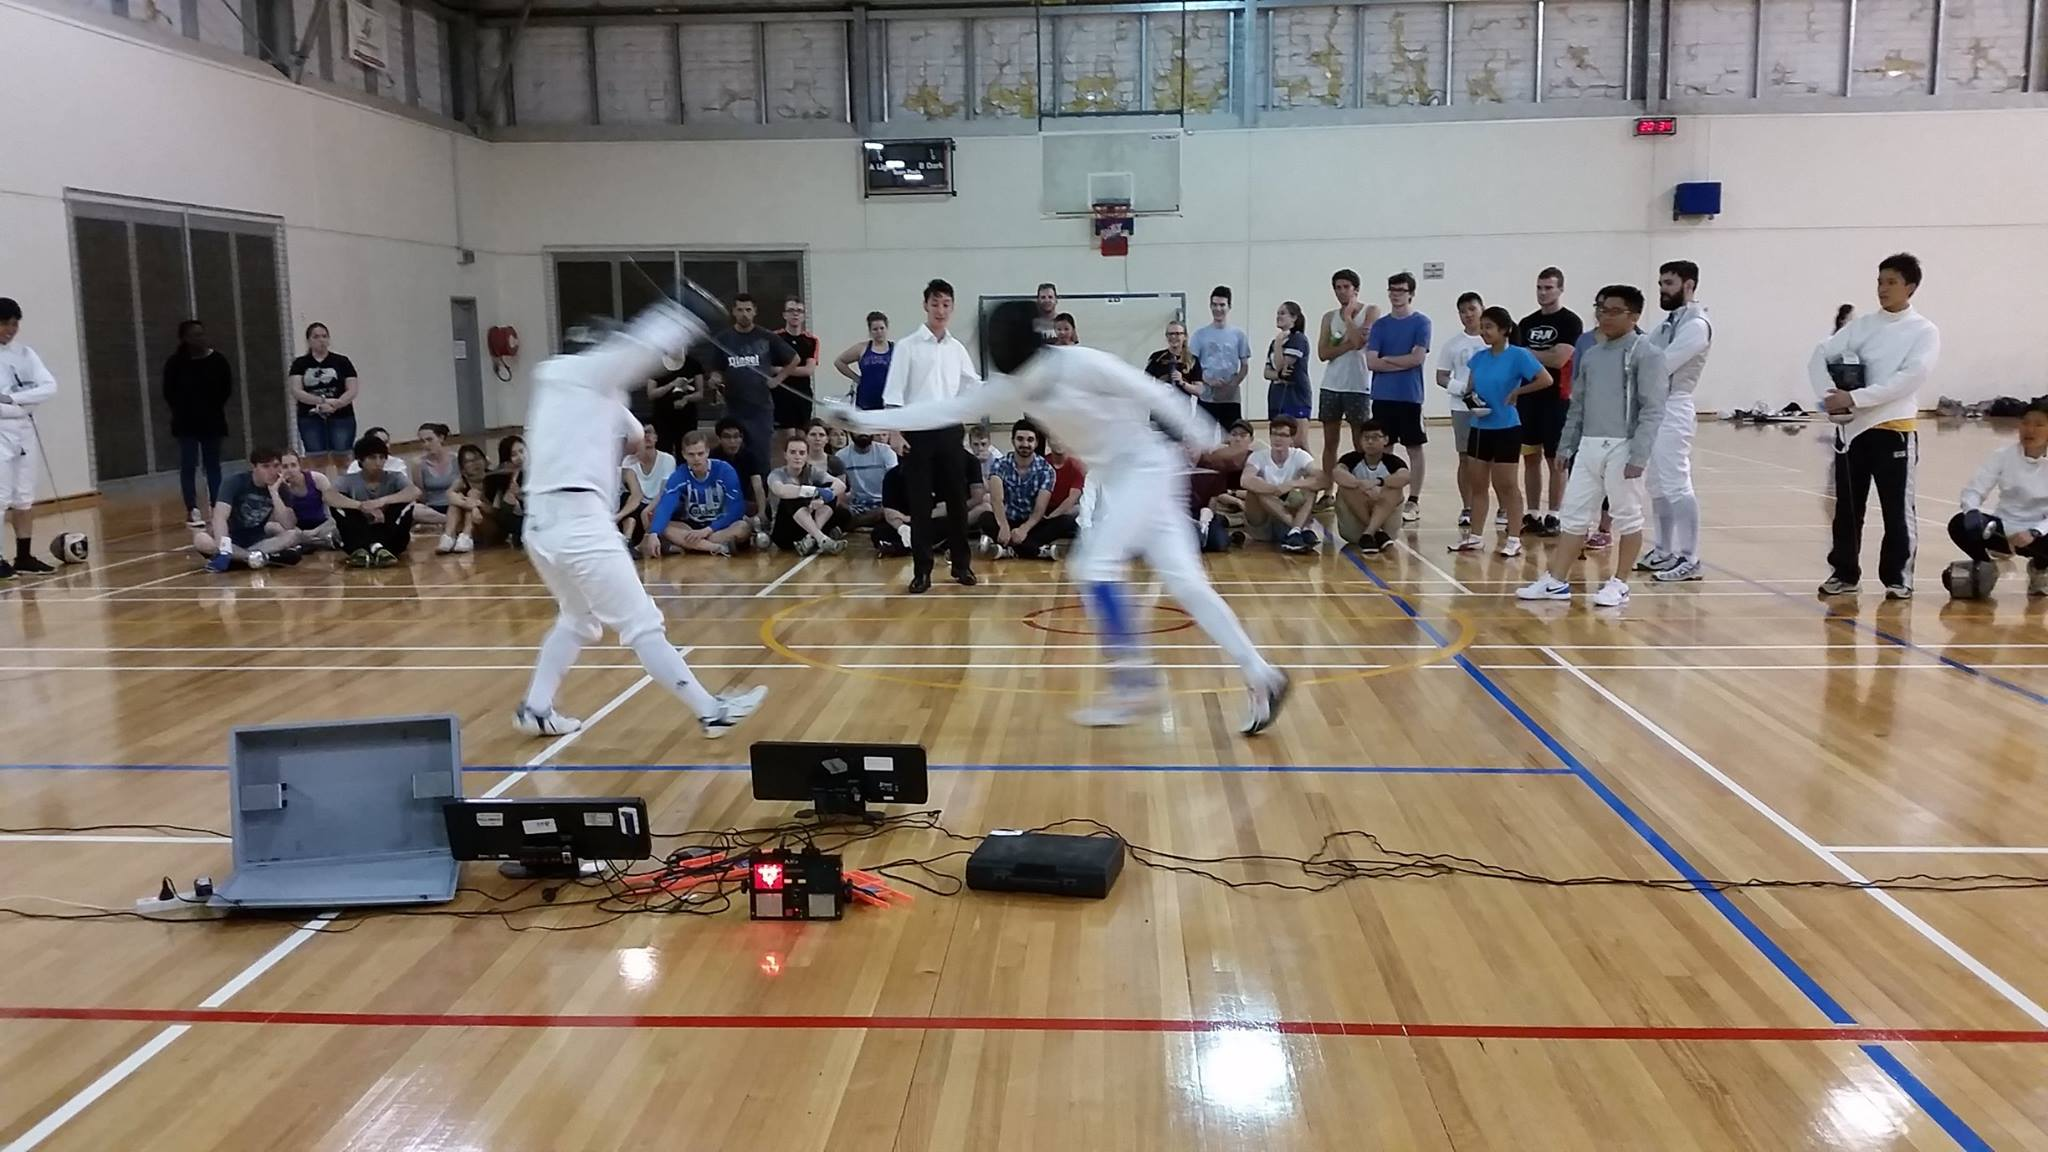 The potential new club members watch a little epee demonstration